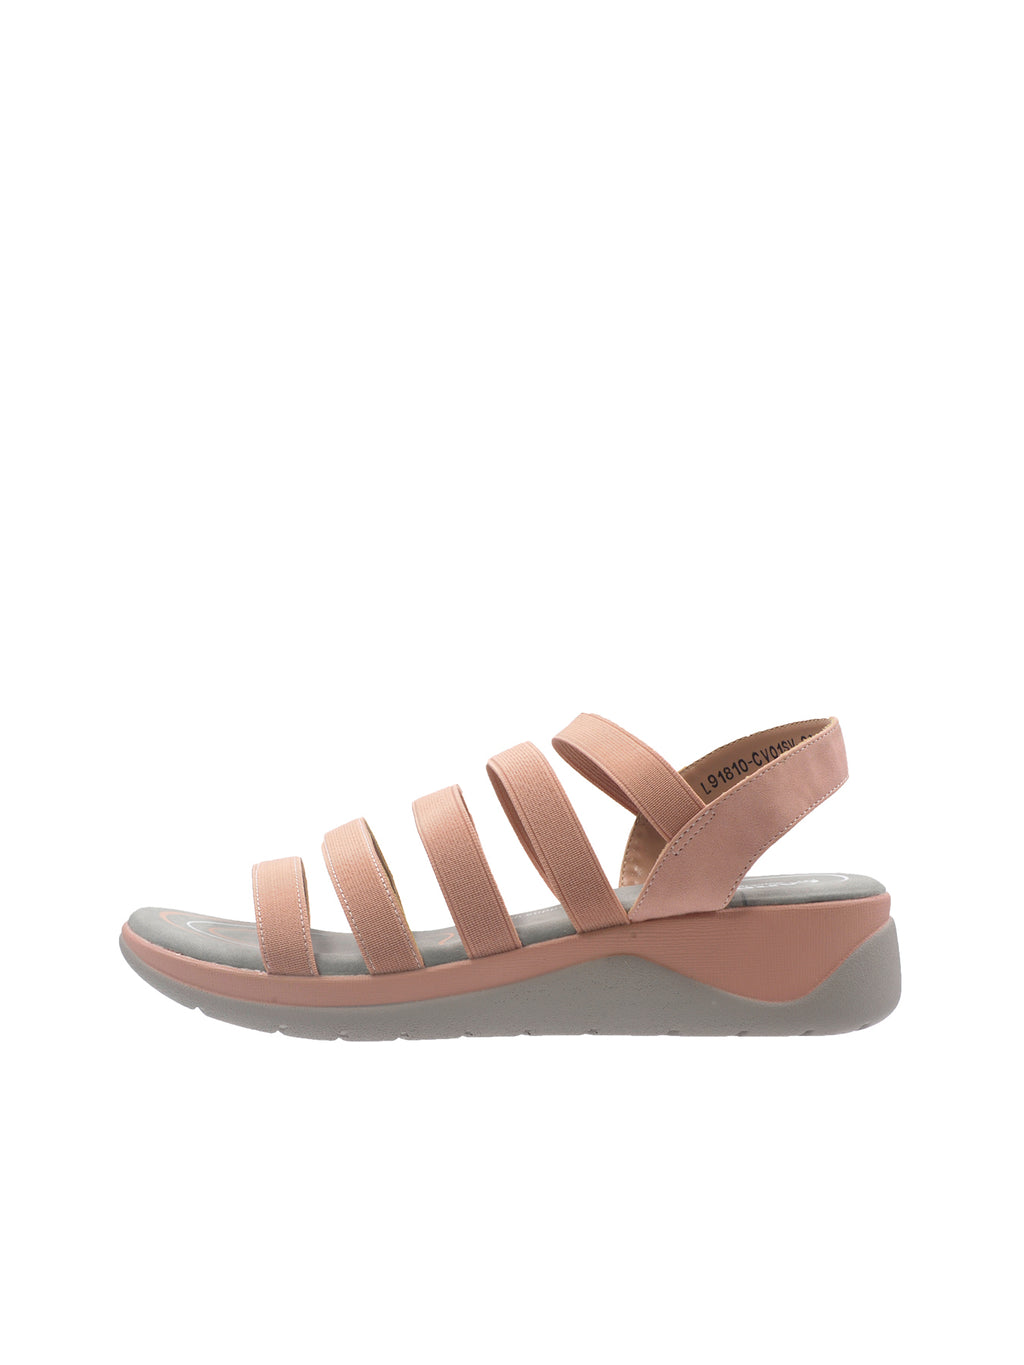 Larrie Pink Feminine Snazzy Sporty Sandals